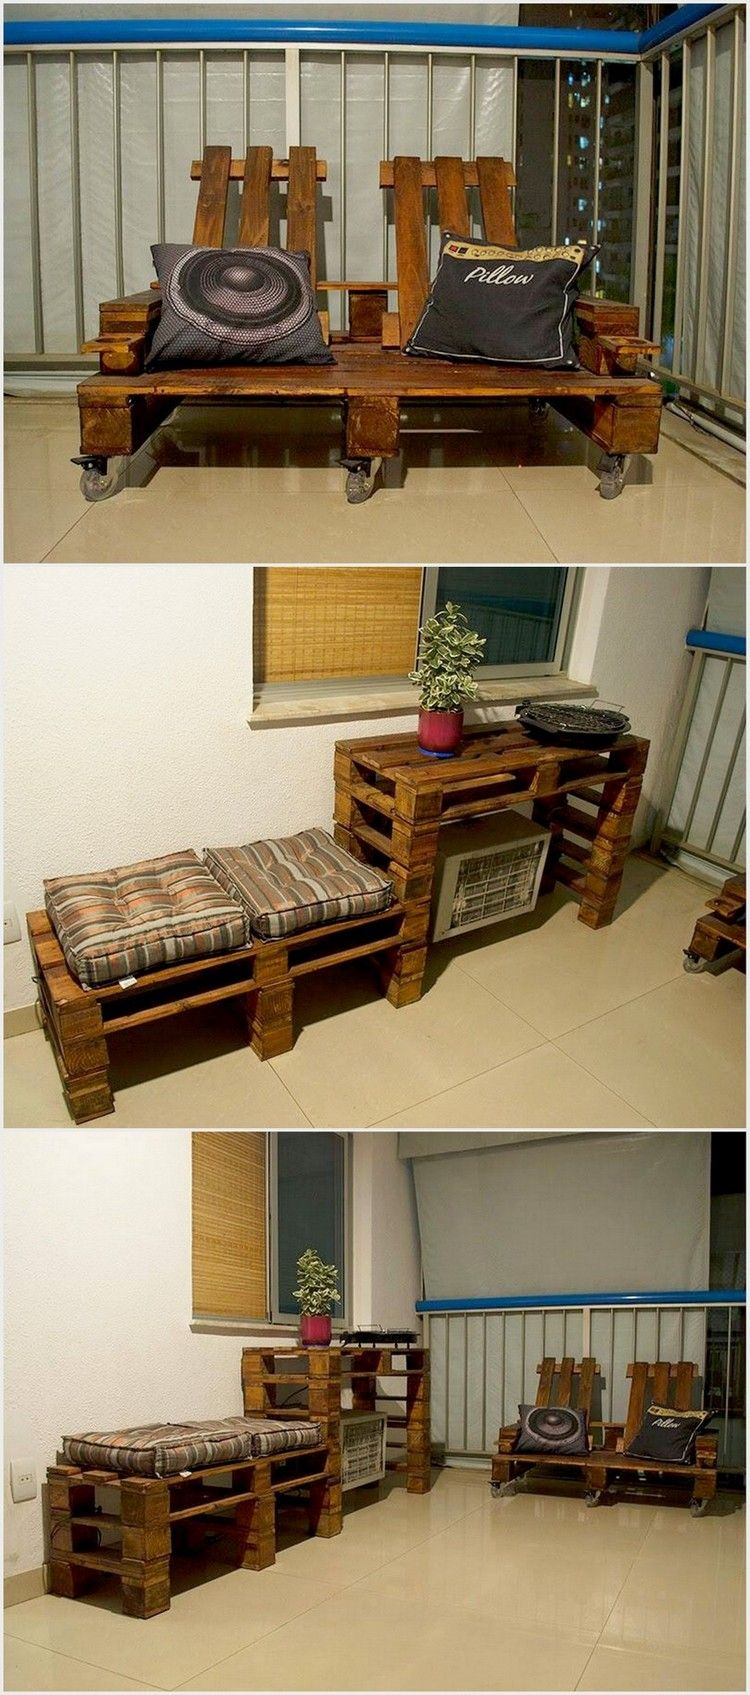 Muebles Celeiro - Excellent Ideas With Used Wood Pallets M Veis Paletas E M Veis [mjhdah]https://i.pinimg.com/originals/fe/65/4b/fe654b3cee07f9e10ff9f2a035bd8762.jpg